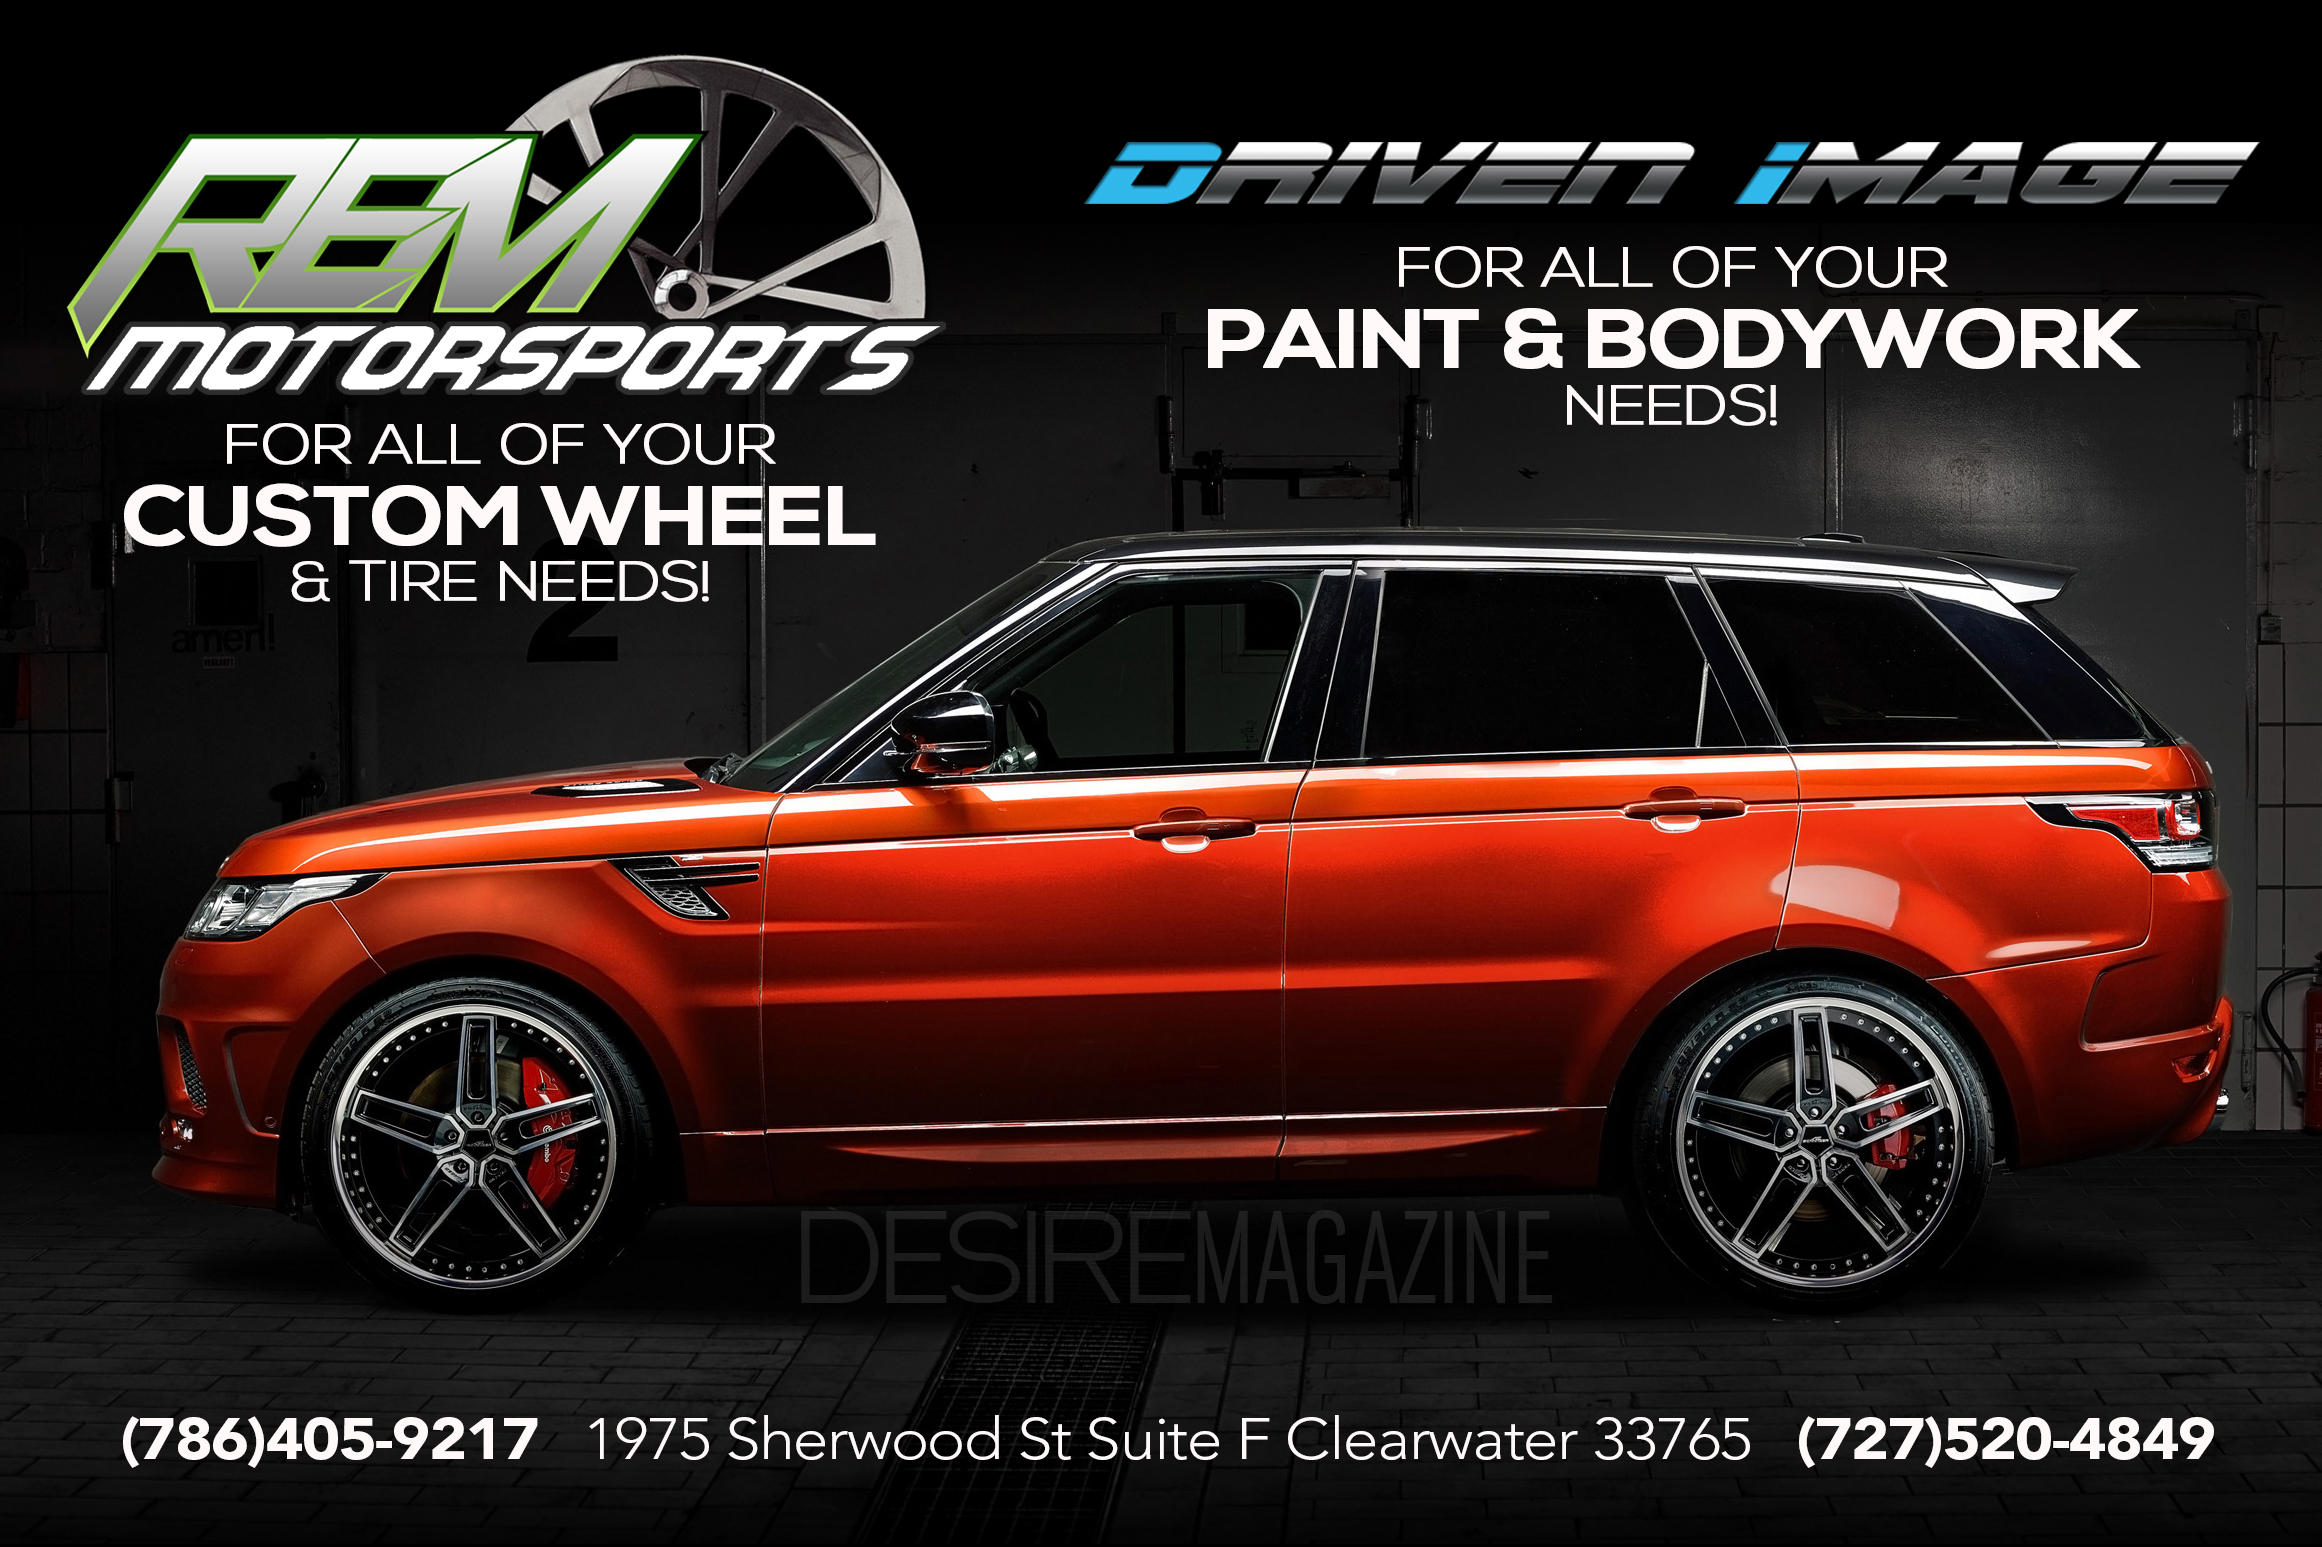 REM Motorsports Wheels & Tires Clearwater FL YP